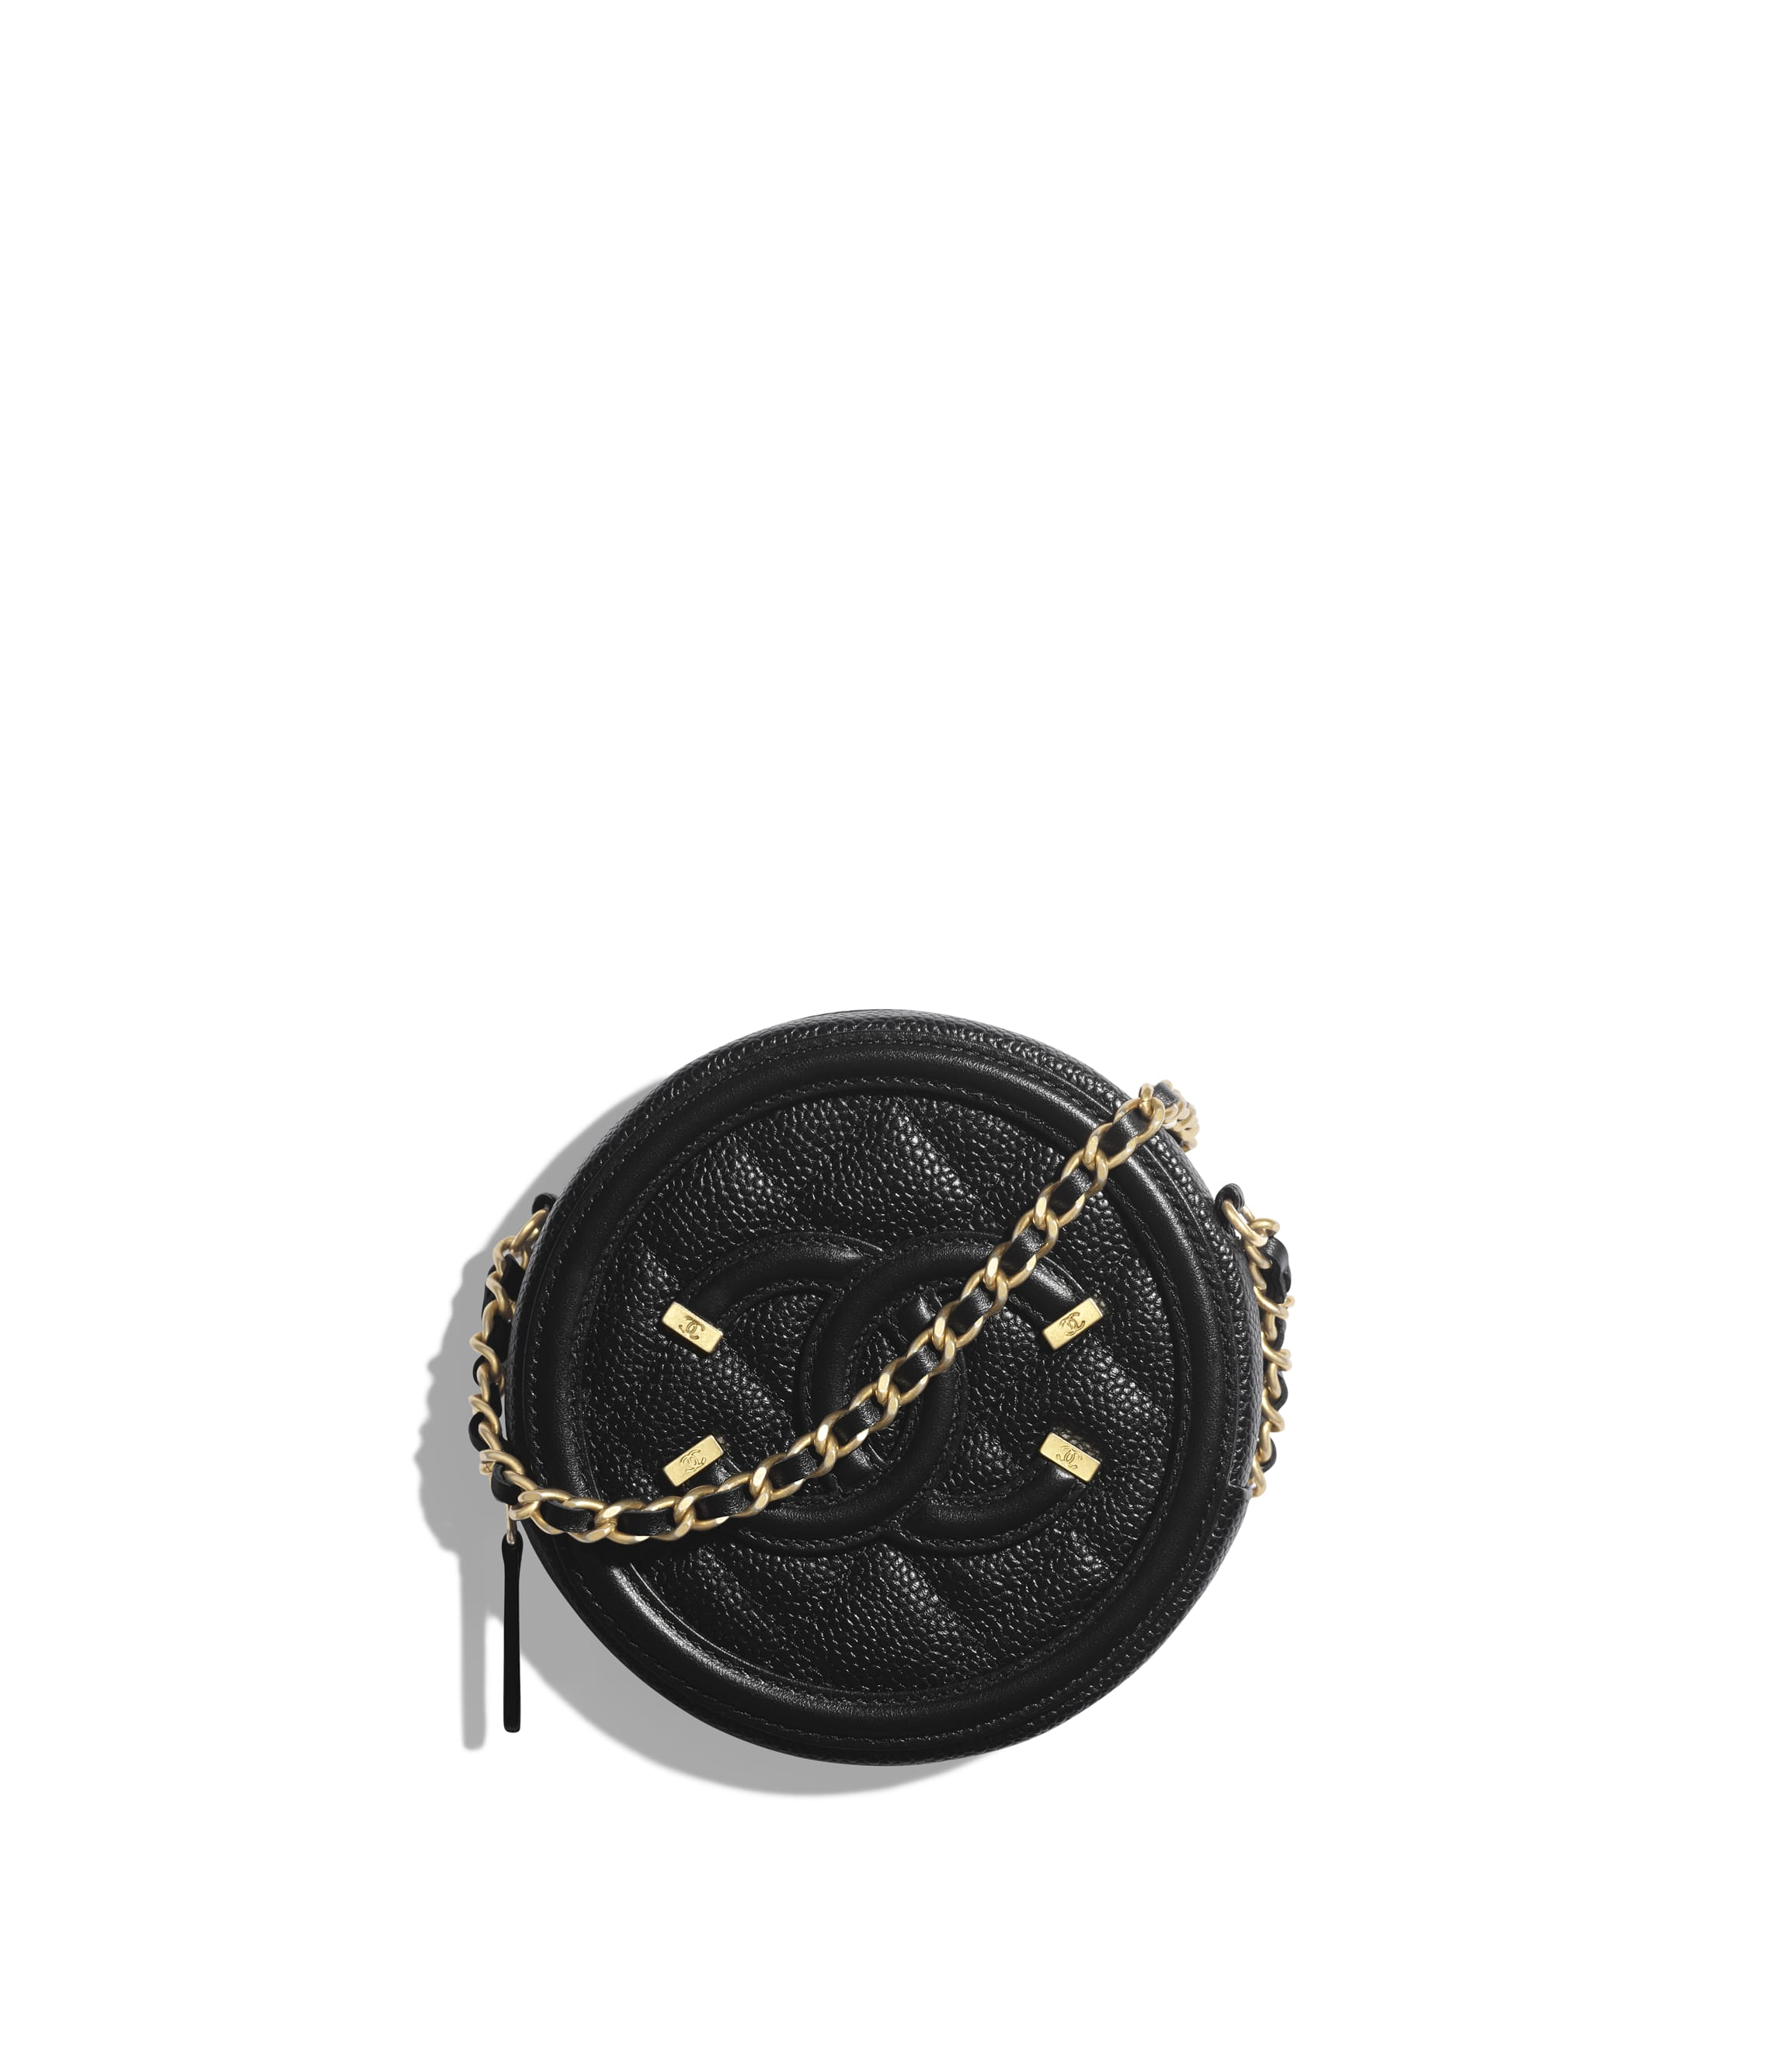 9467be8ac7da Clutches with Chain - Small Leather Goods - CHANEL